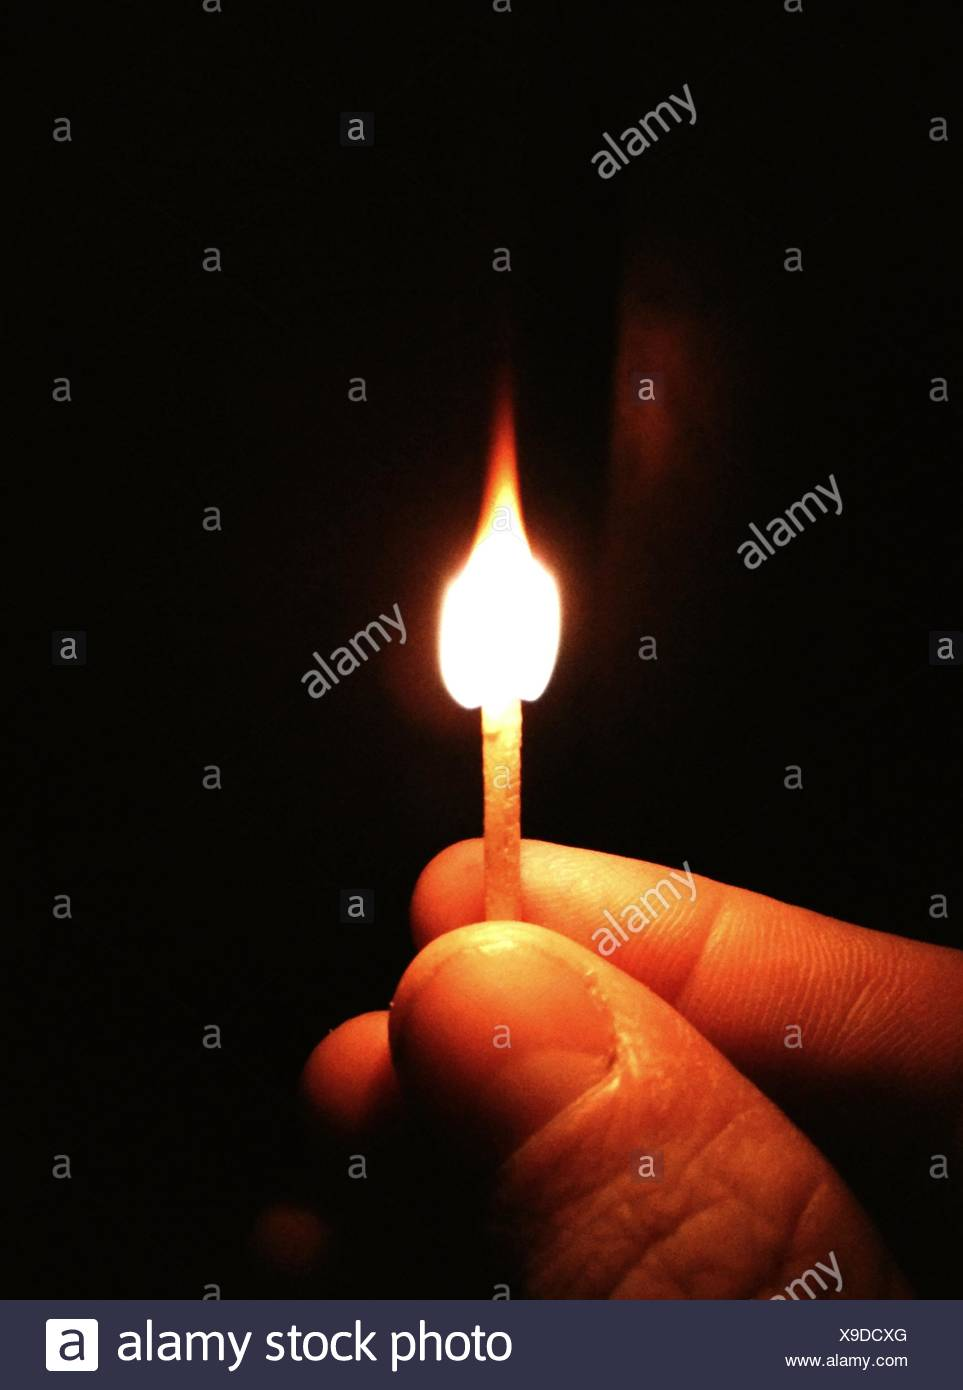 Hand Holding Lit Matchstick - Stock Image